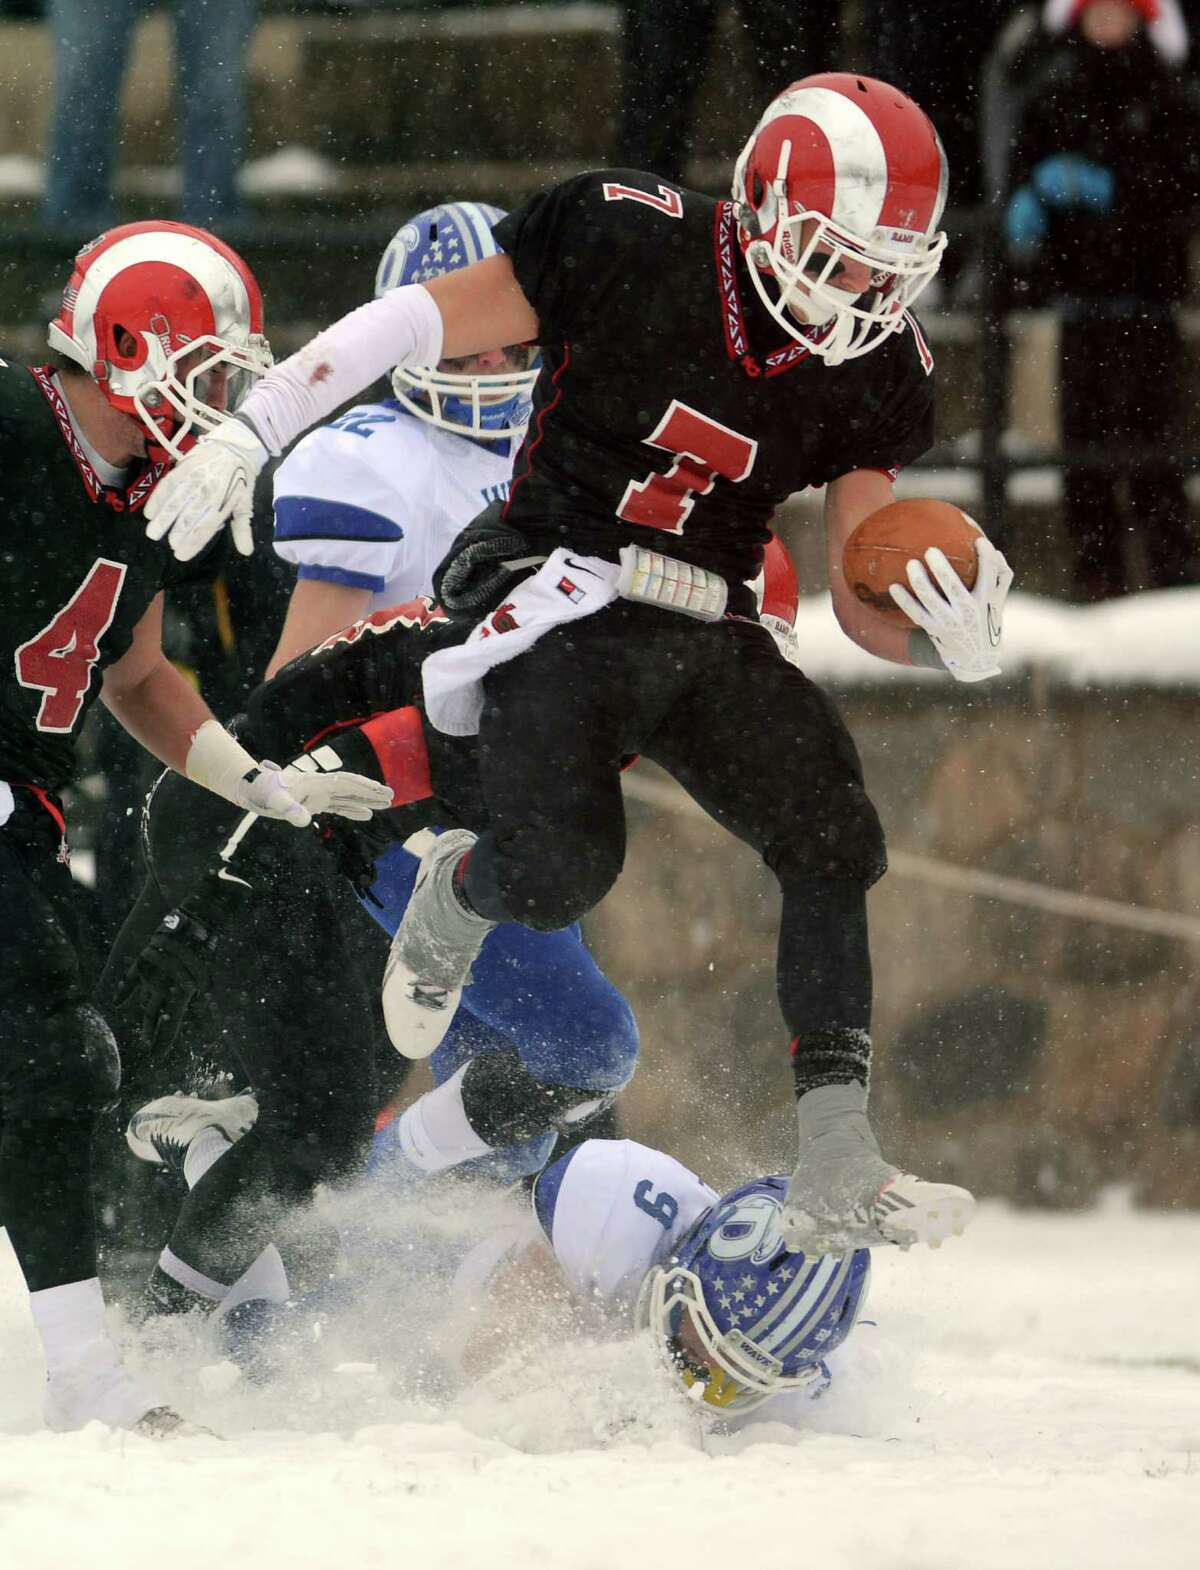 New Canaan's Alexander LaPolice escapes a tackle on his way to a touchdown during the Class L state championship game against Darien on Saturday, Dec. 14, 2013 at Boyle Stadium in Stamford, Conn.